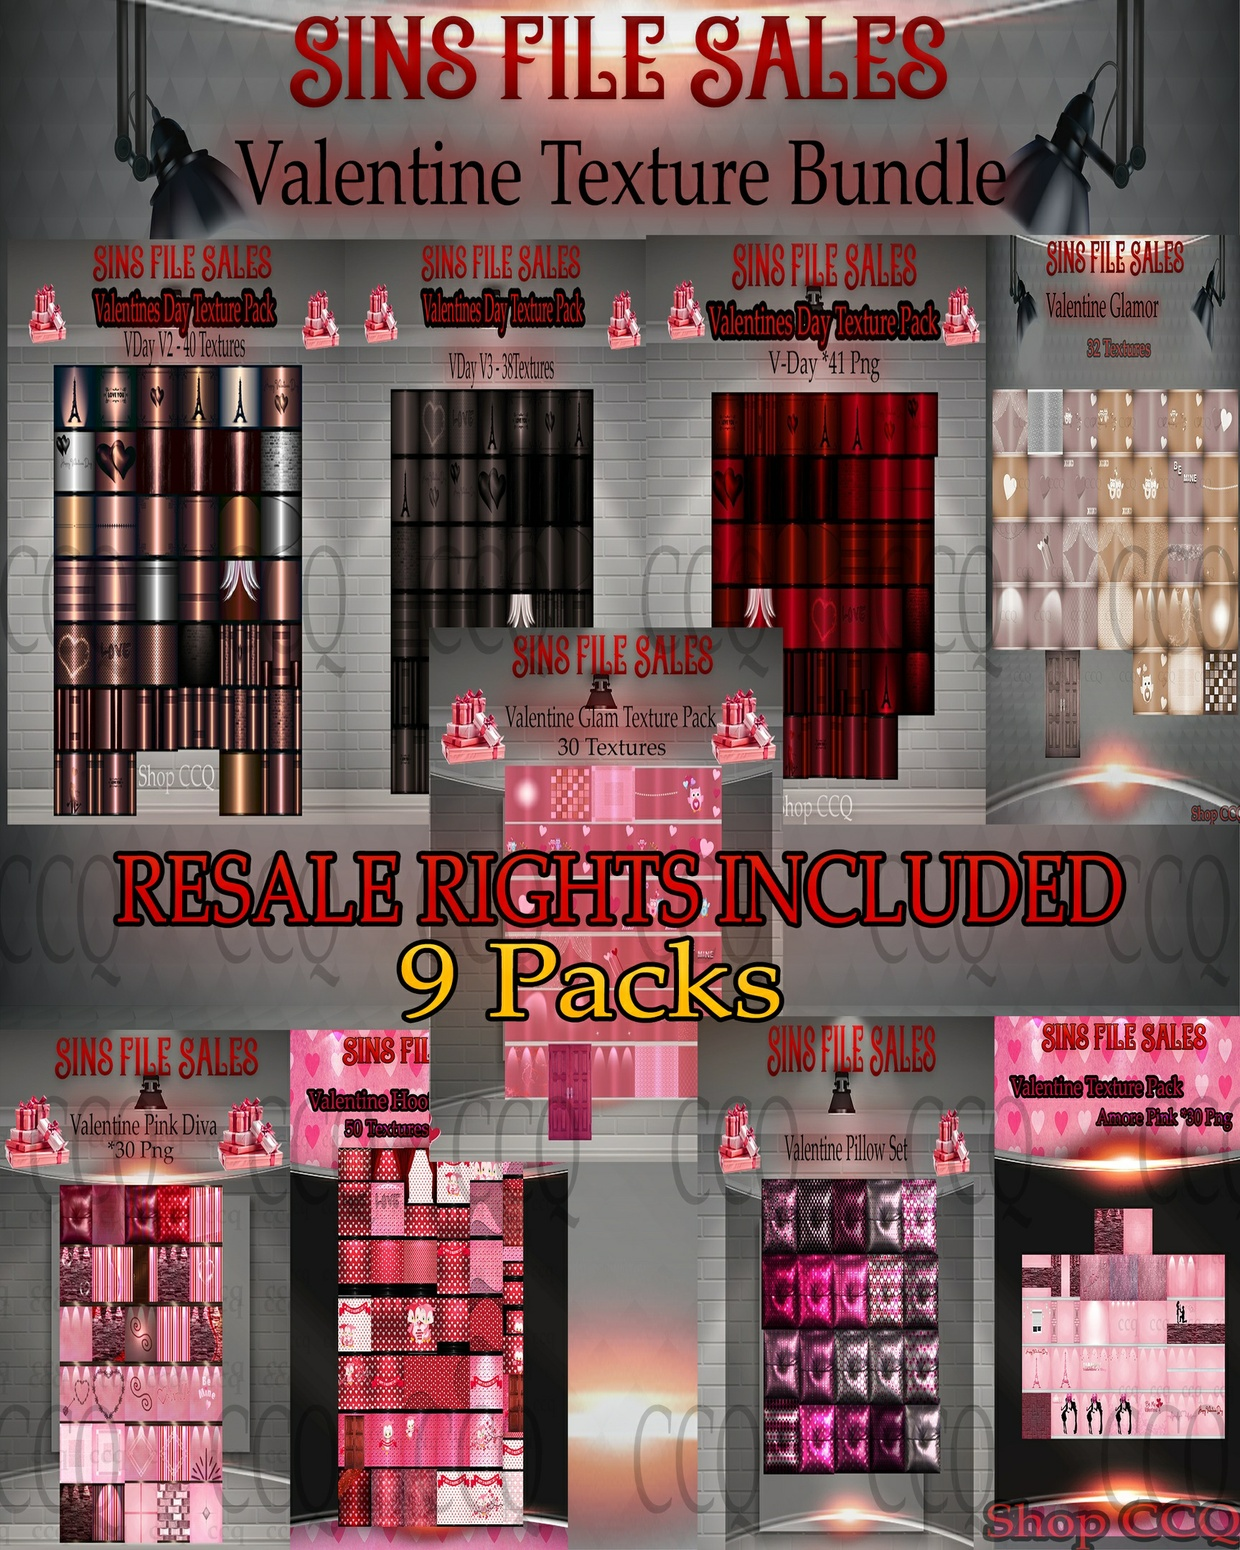 ♥Valentine Texture Mega Bundle♥With Resale Rights